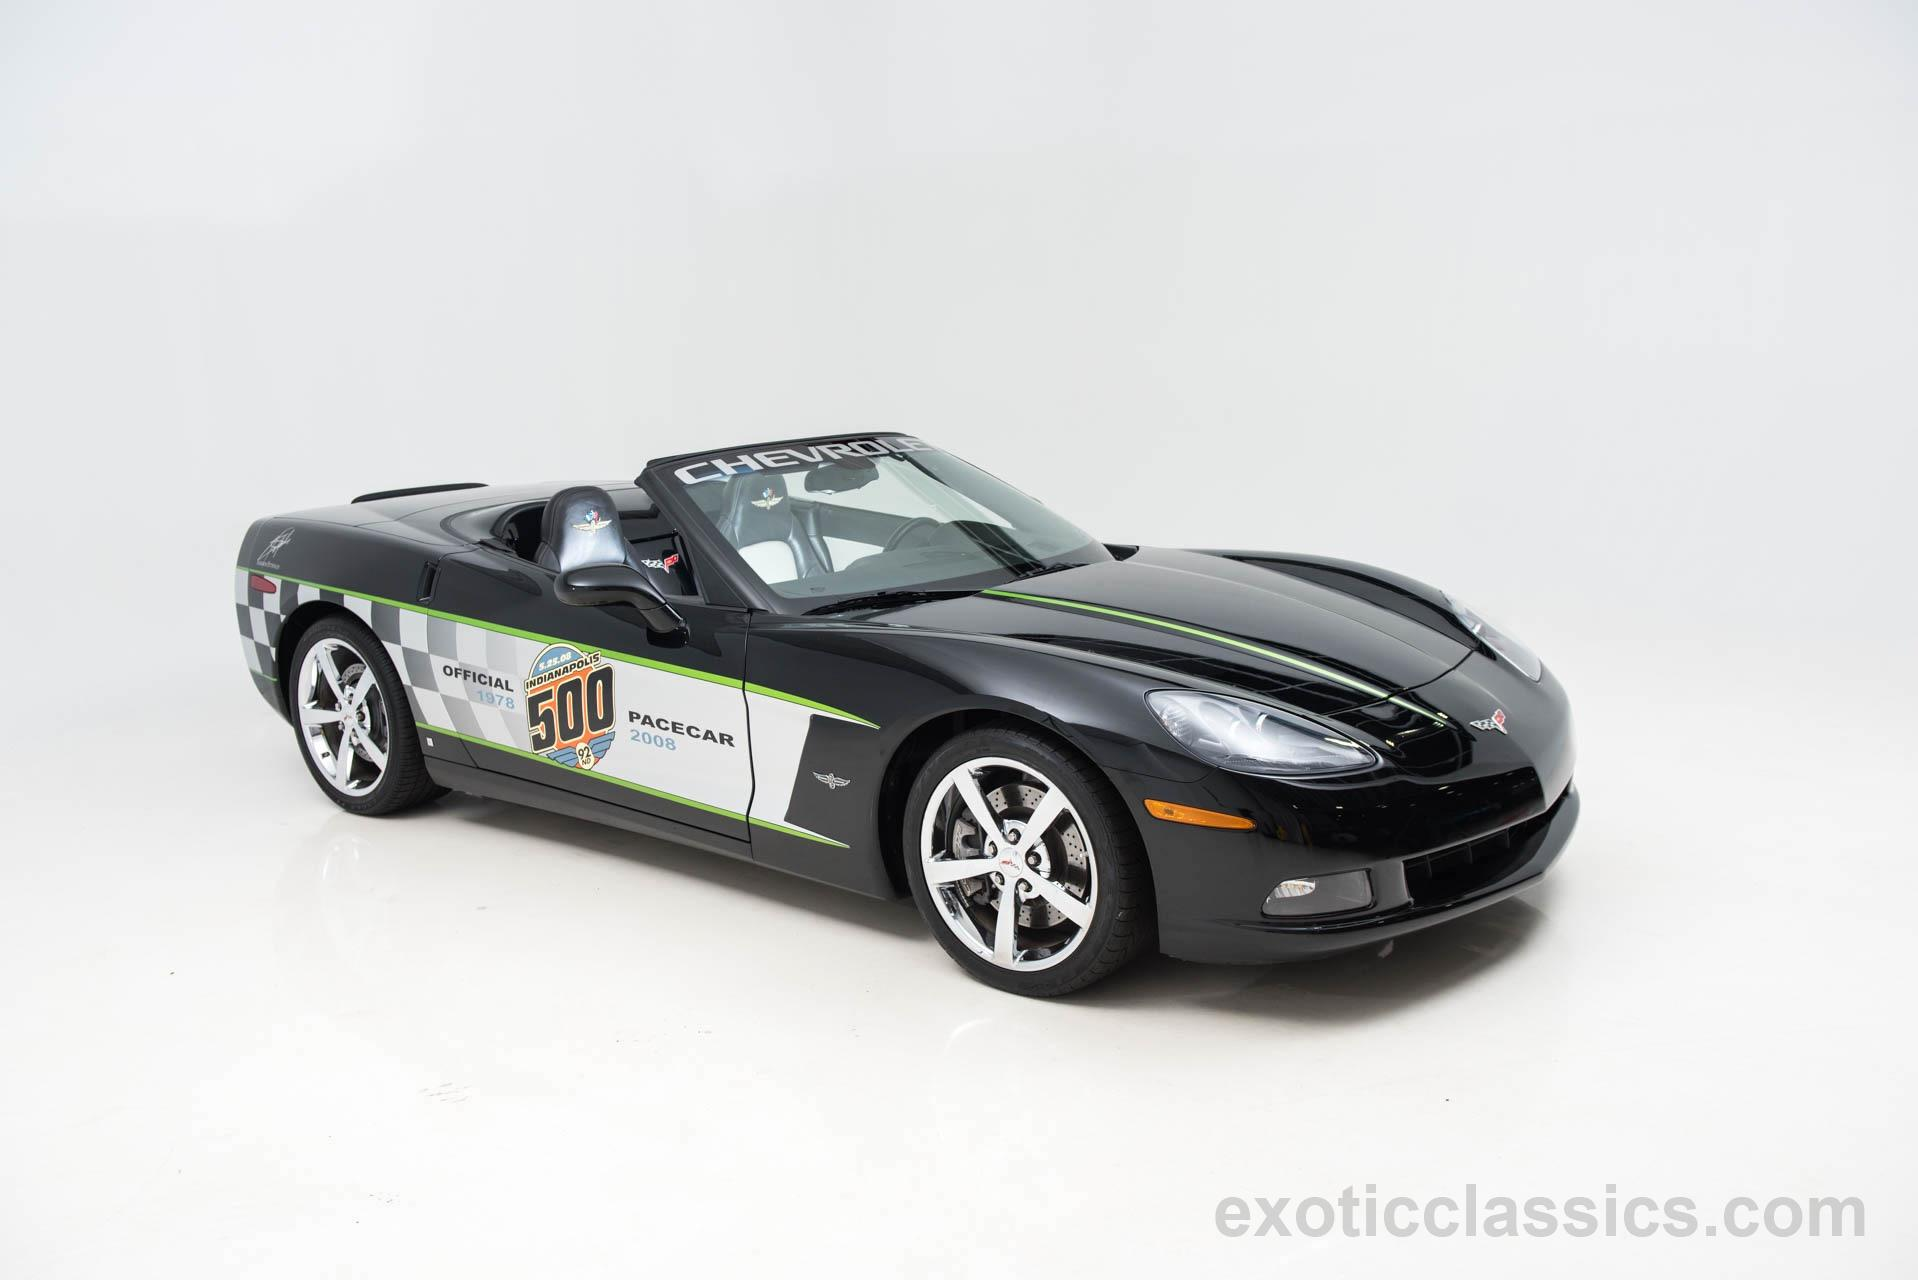 2008 Chevrolet Corvette Indy 500 Pace Car Indy 500 Pace Car Replica